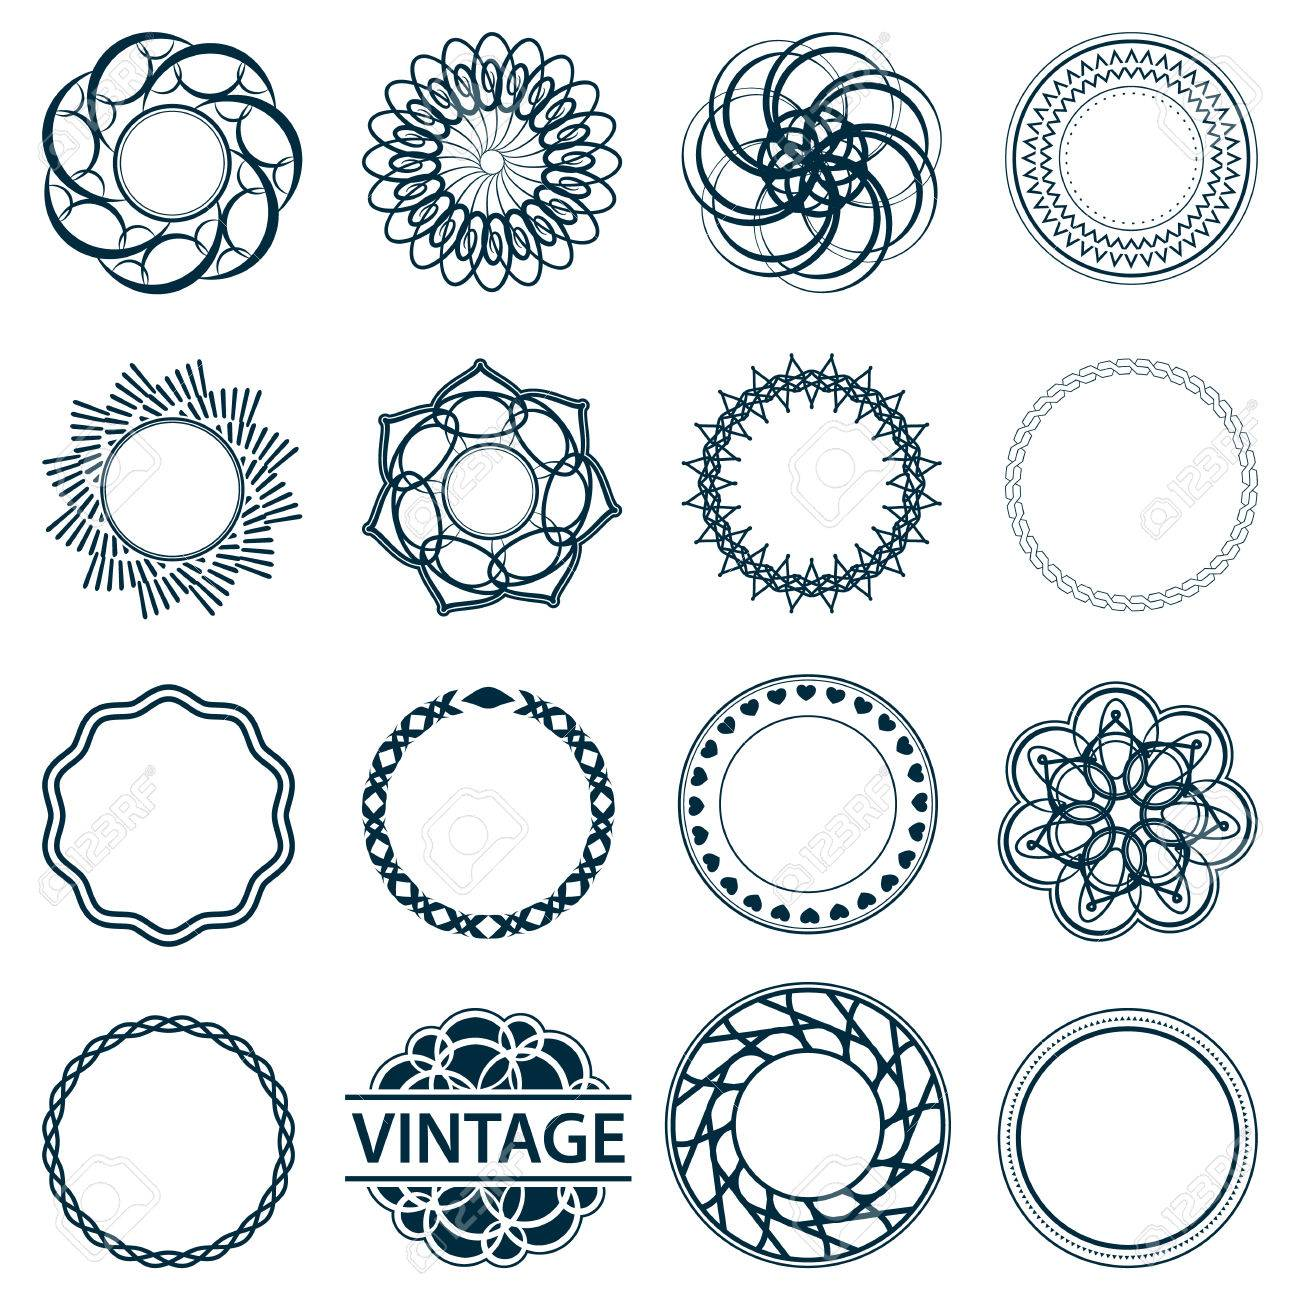 647f6375caf ... outline blue color in white background. Set fractal and swirl shape  element. Vintage monochrome different objects. Vector decorative sample.